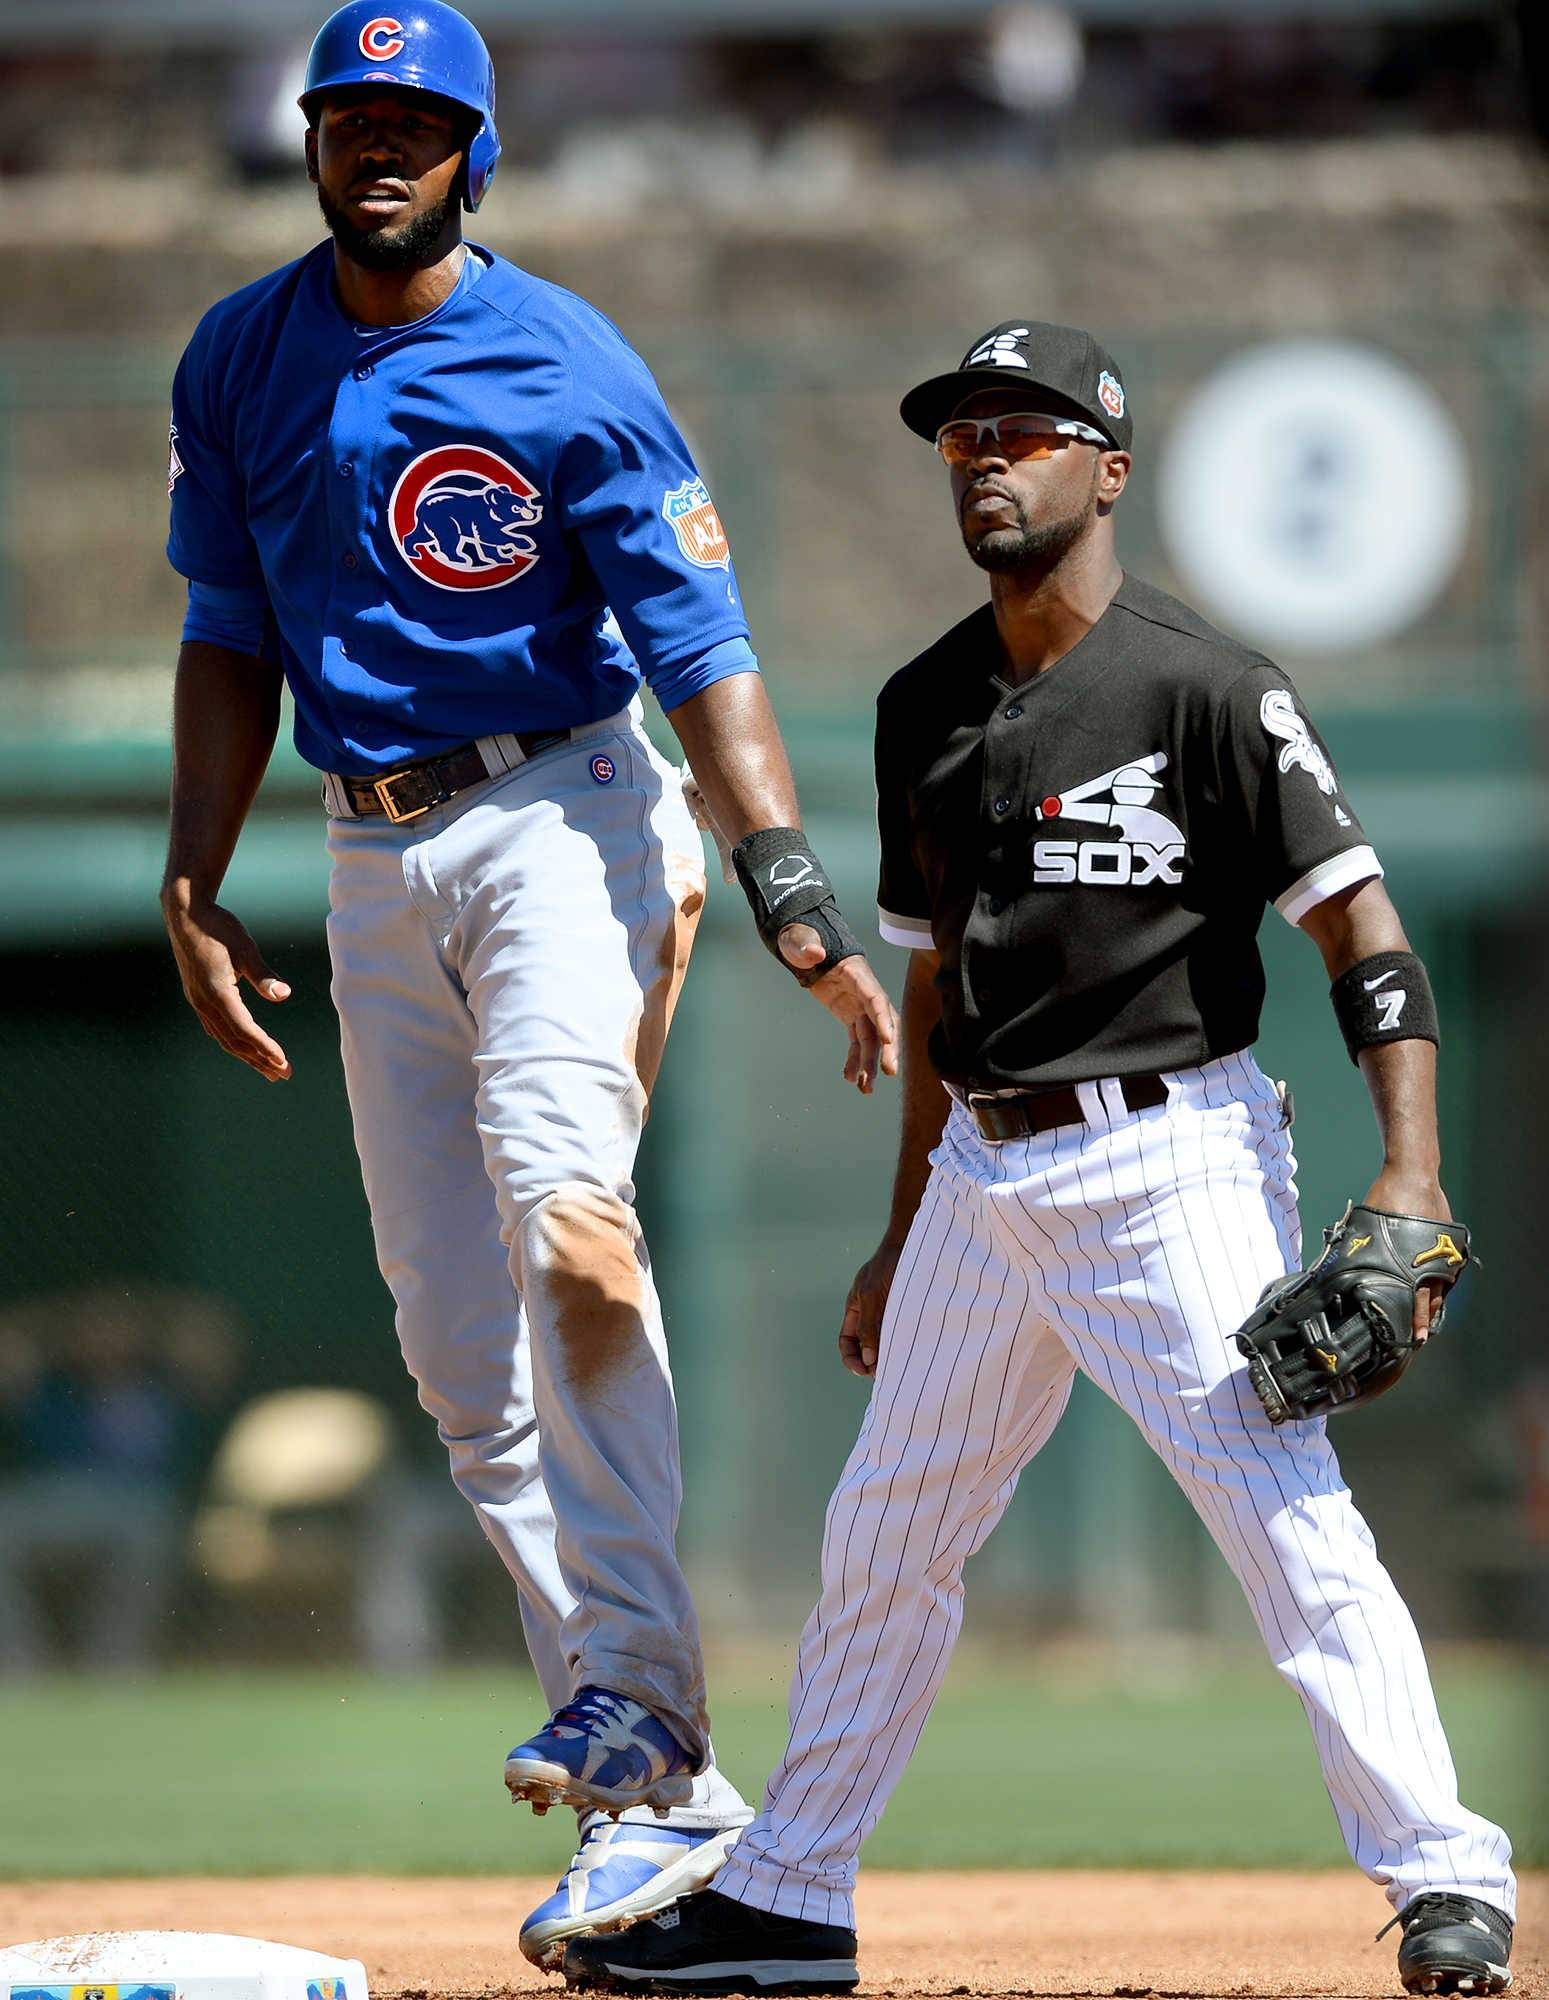 Could the Chicago Cubs' Dexter Fowler and the Chicago White Sox's Jimmy Rollins find themselves sharing a field in late October this year?